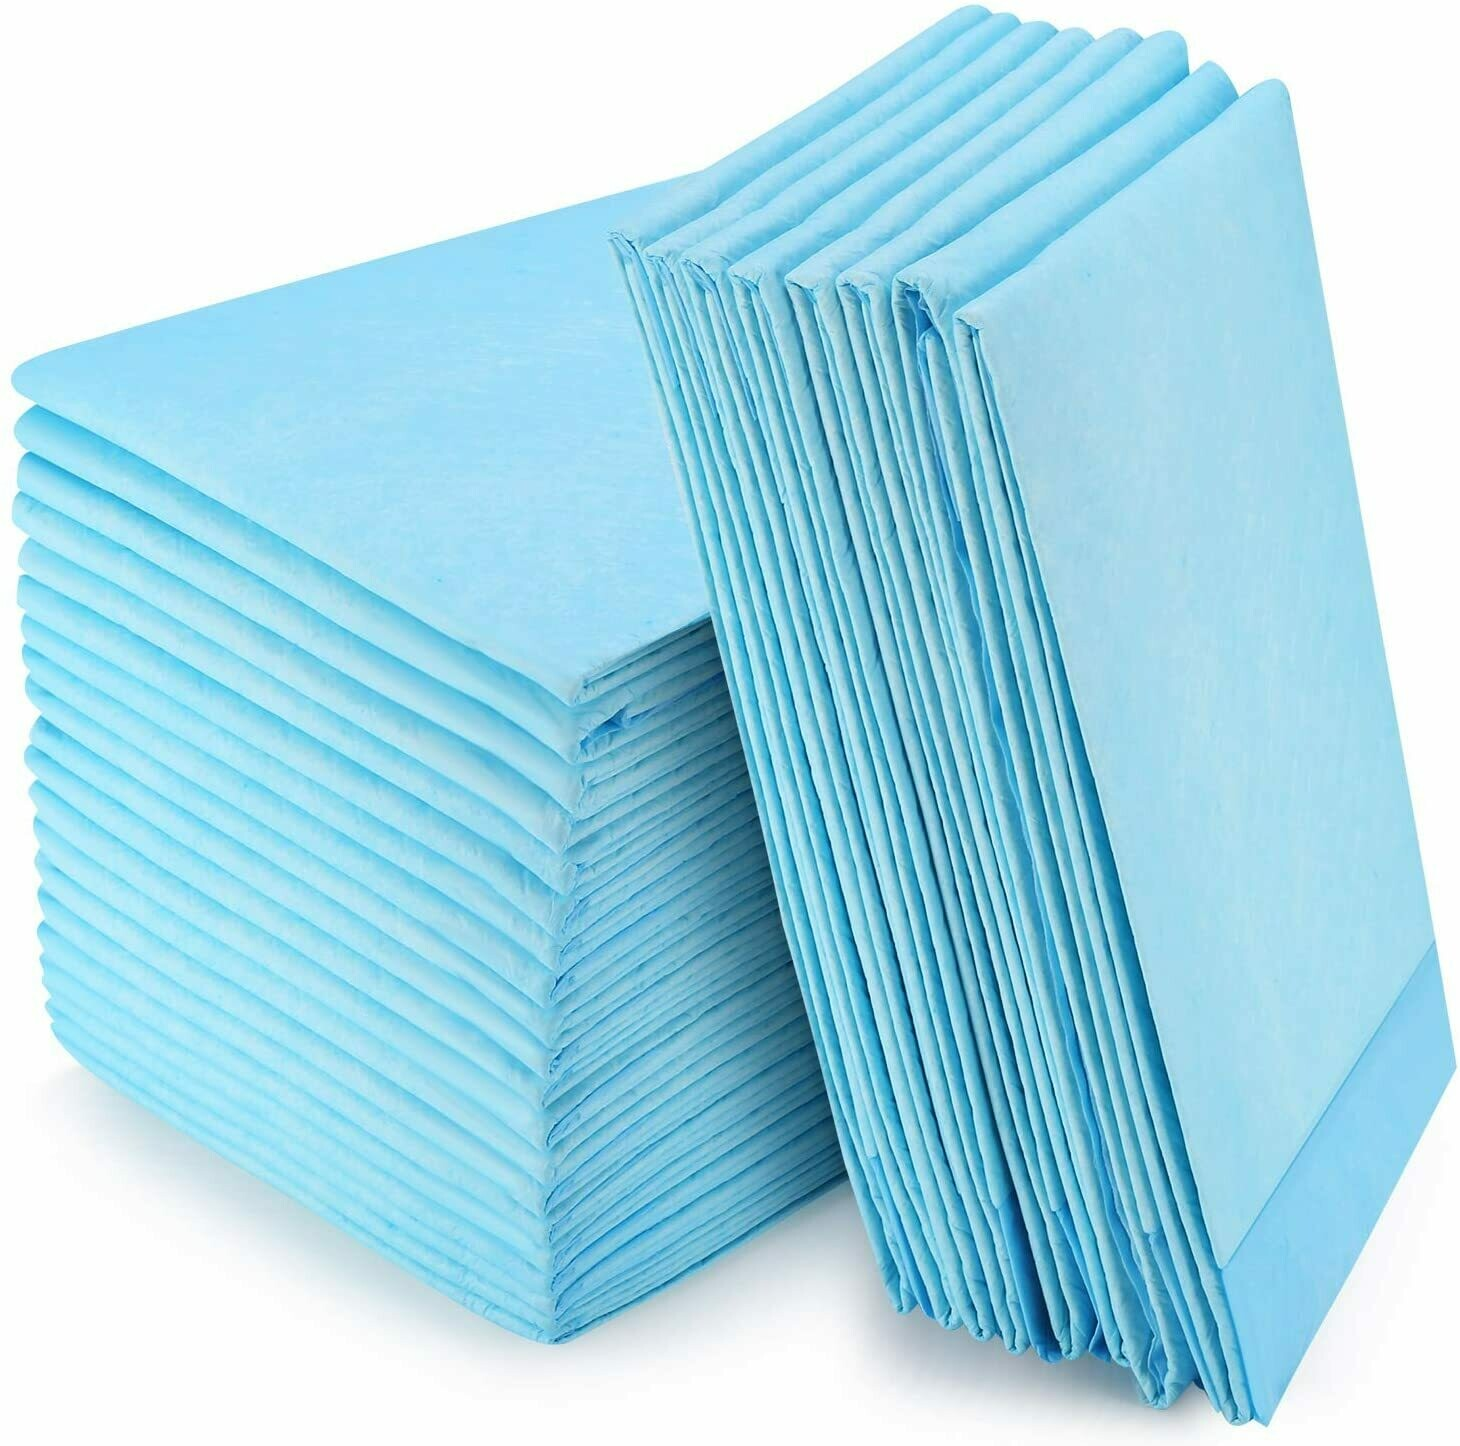 Disposable Underpads - Clever choice comfort protect-30*26 -25 pads